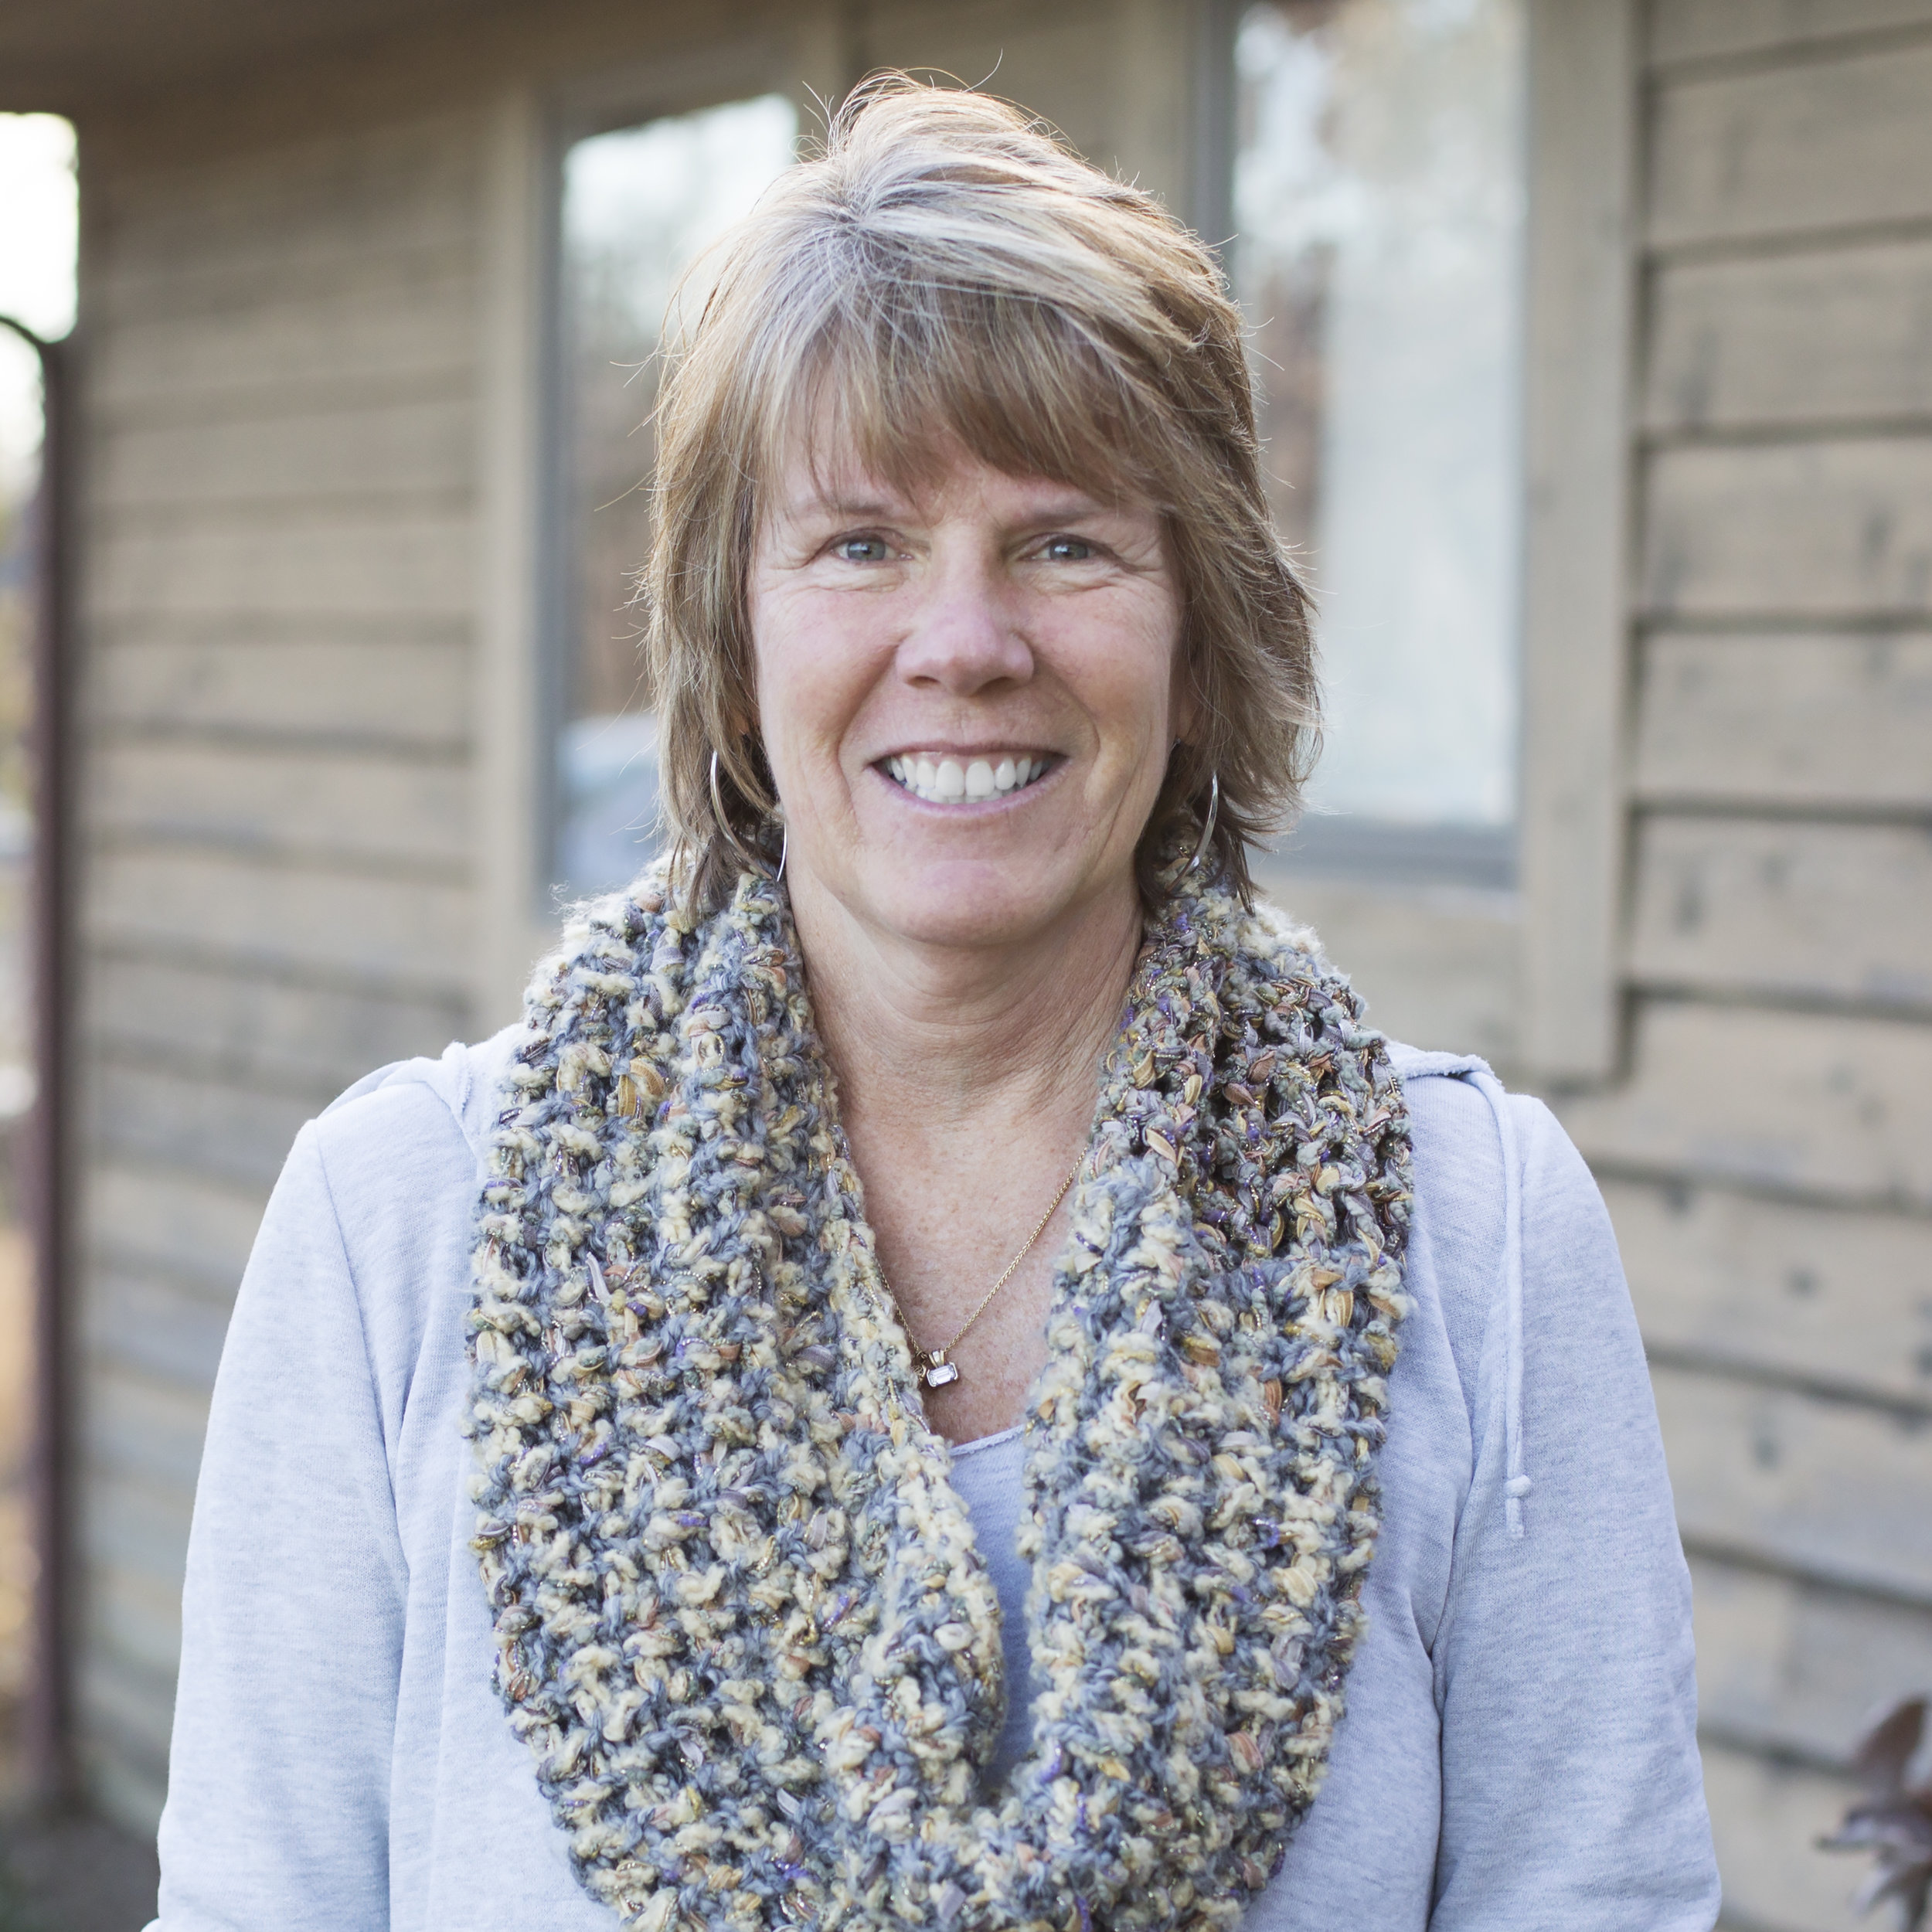 Cindy Rodgers - OFFICE MANAGERCindy joined Russell Tree Experts in 2012. She is our Plant Health Care guru! She is a daughter, sister, wife, Mom, and now a Lou-Lou (Grandma). Family gatherings, gardening, crafting, cooking and down-hill skiing are a few of her favorite to-dos.▶ CPR & First Aid